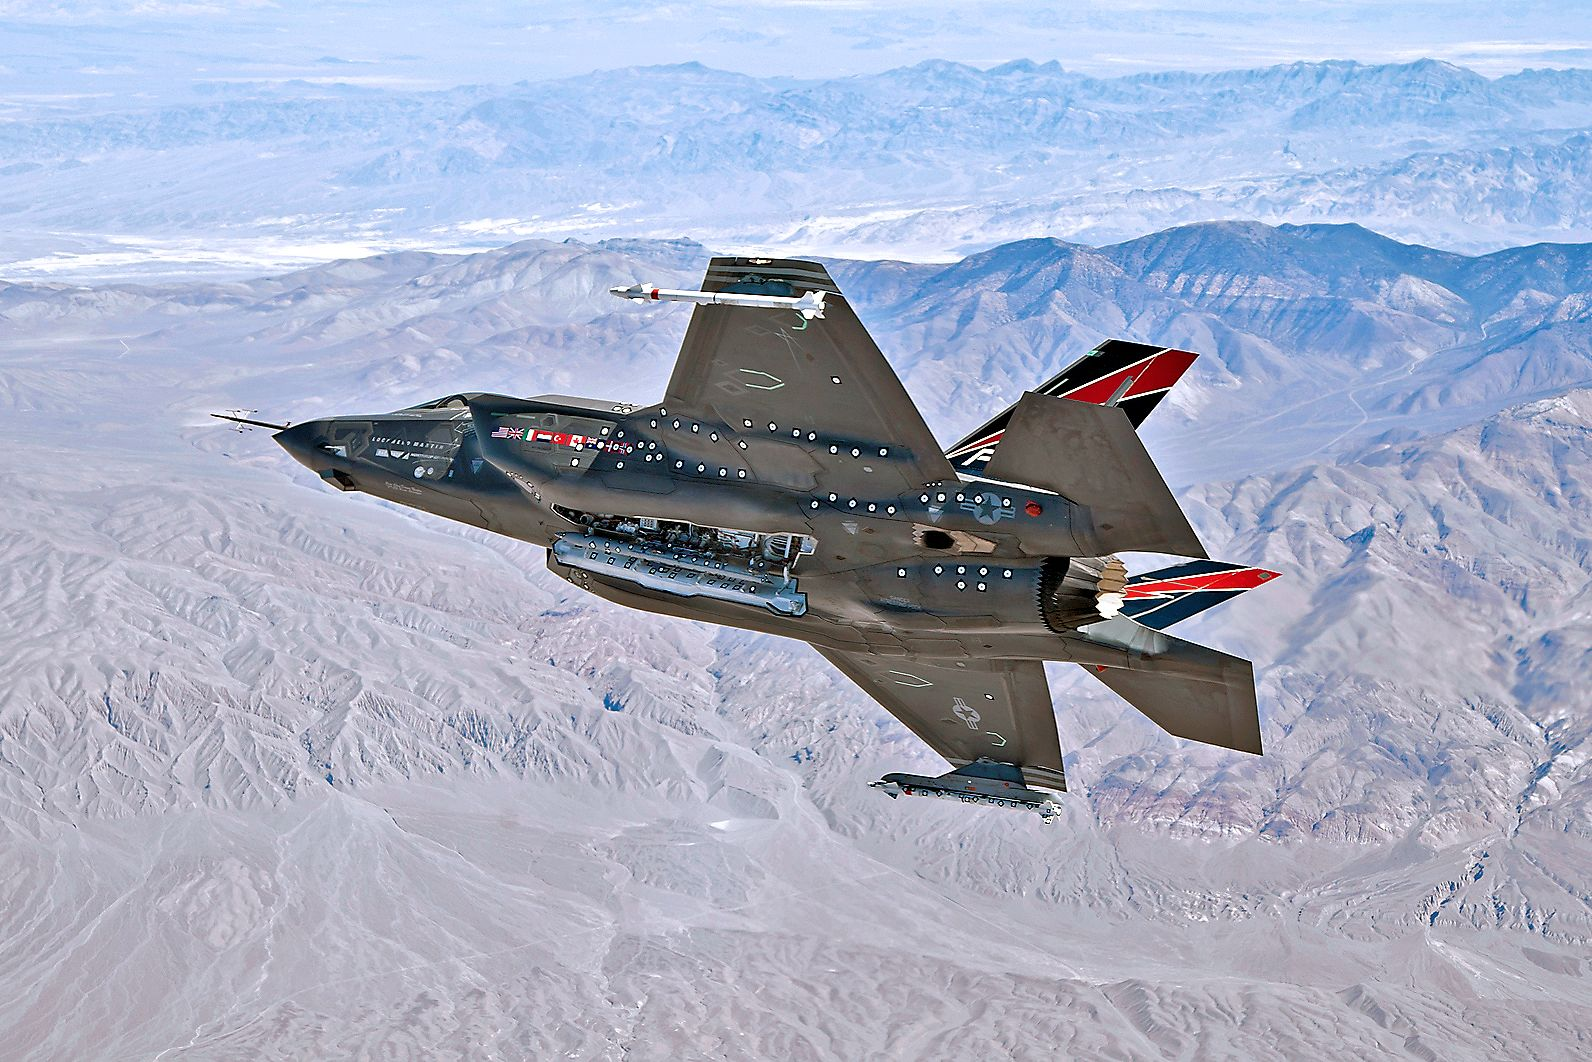 412th Test Wing F 35 Lightning II